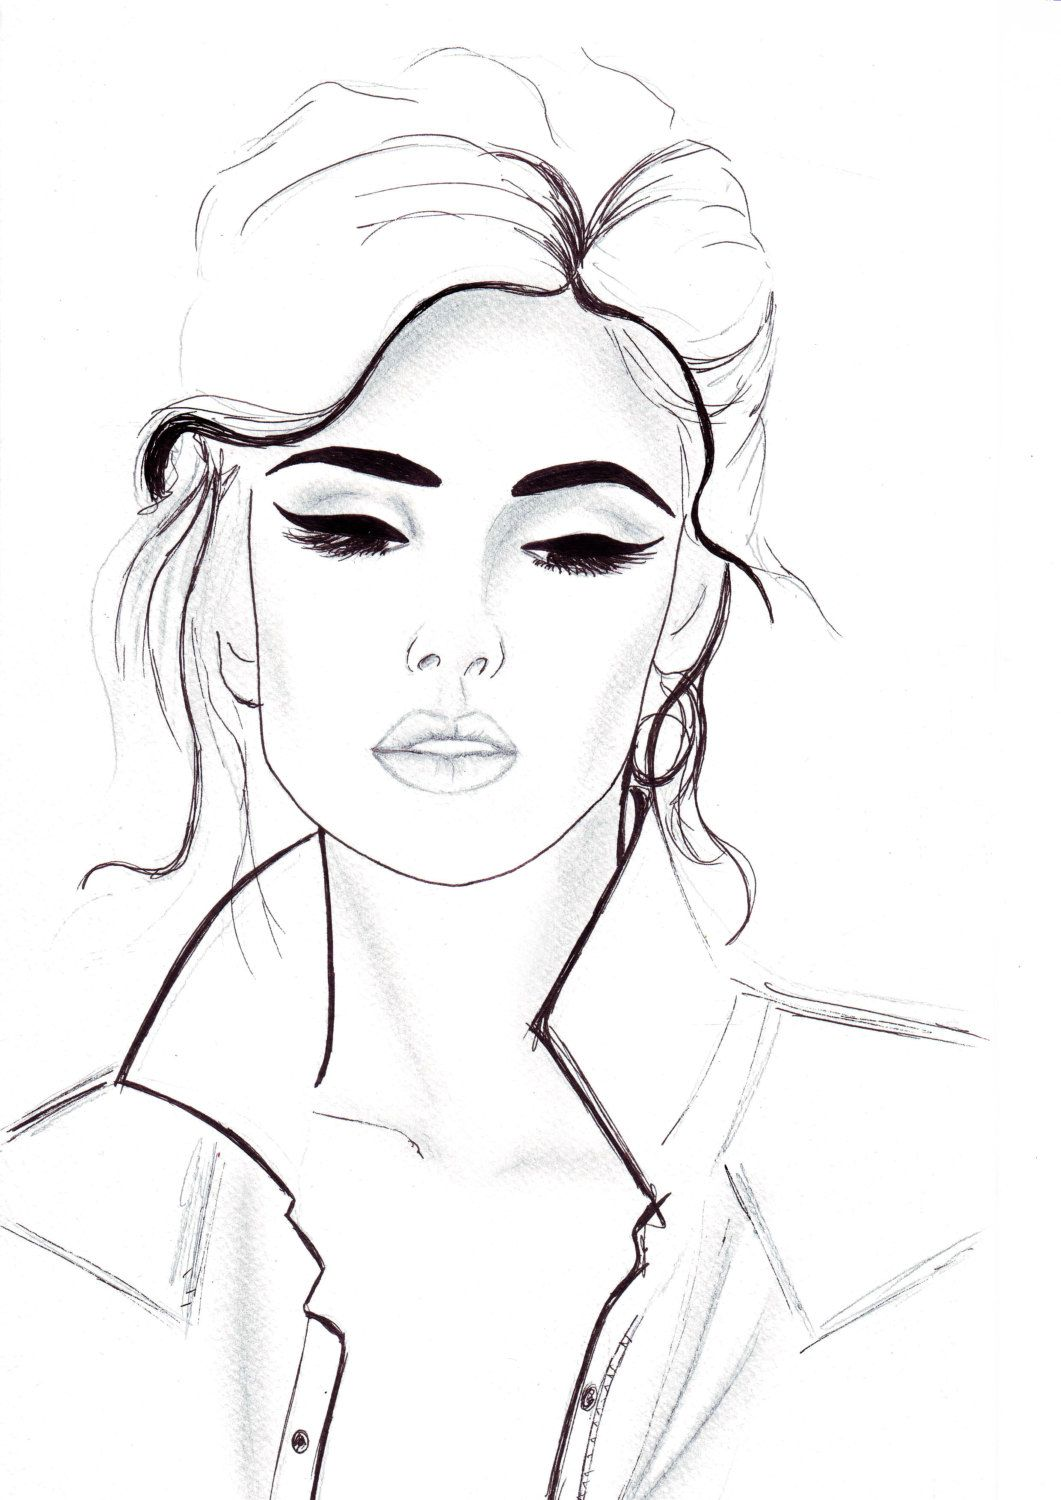 Pen And Pencil Fashion Illustration Titled All That